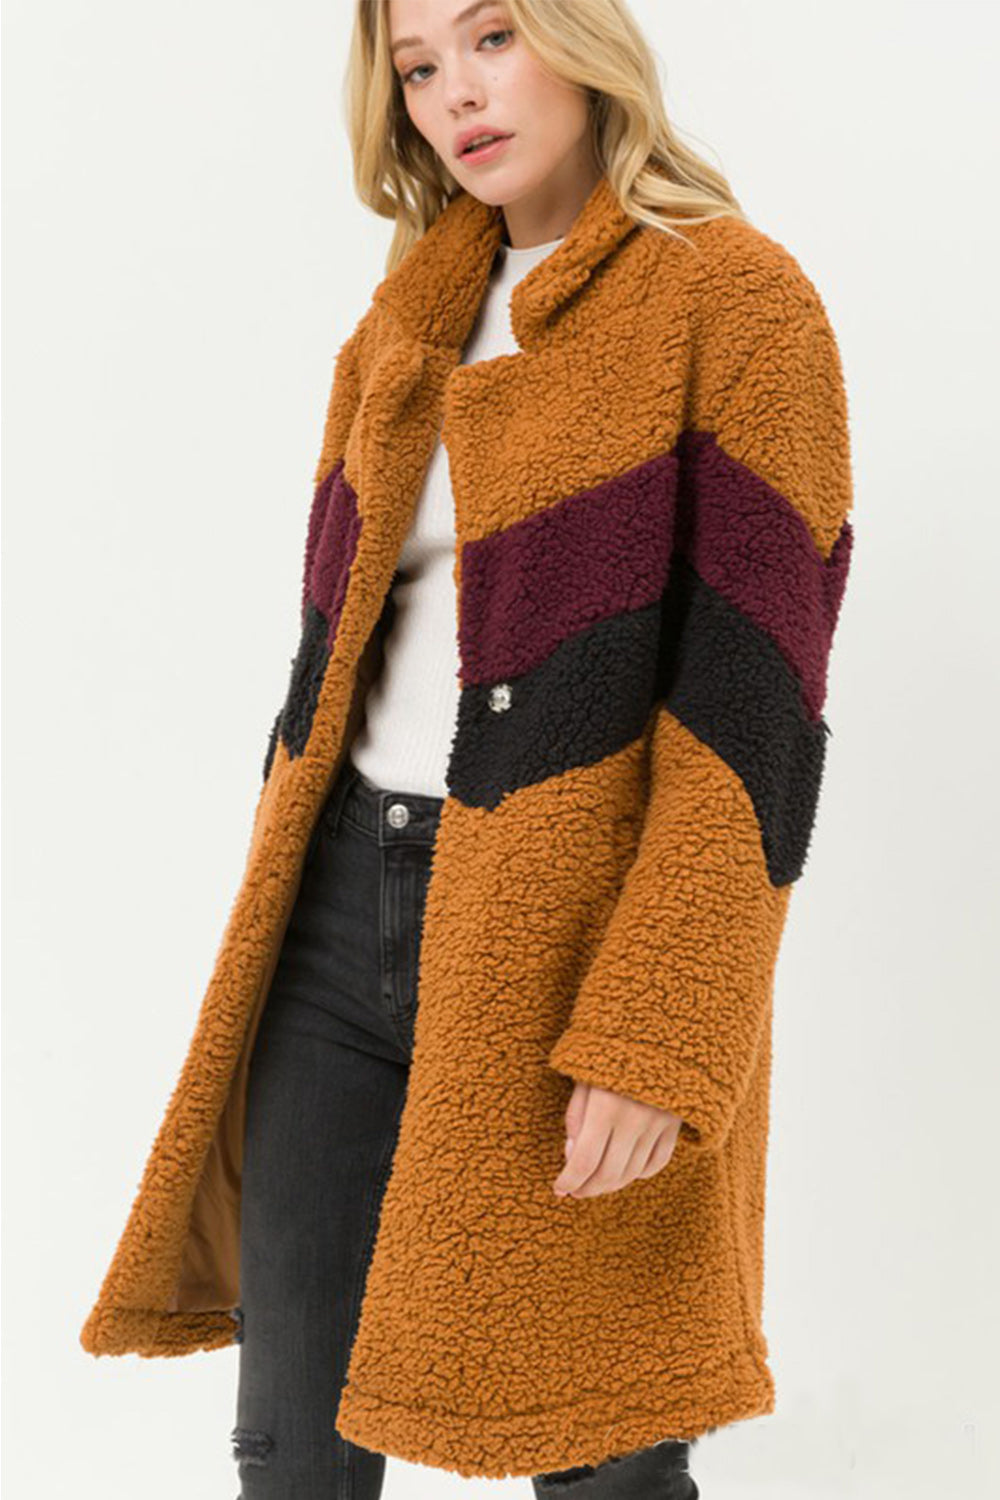 Go Fur It Camel Striped Teddy Coat